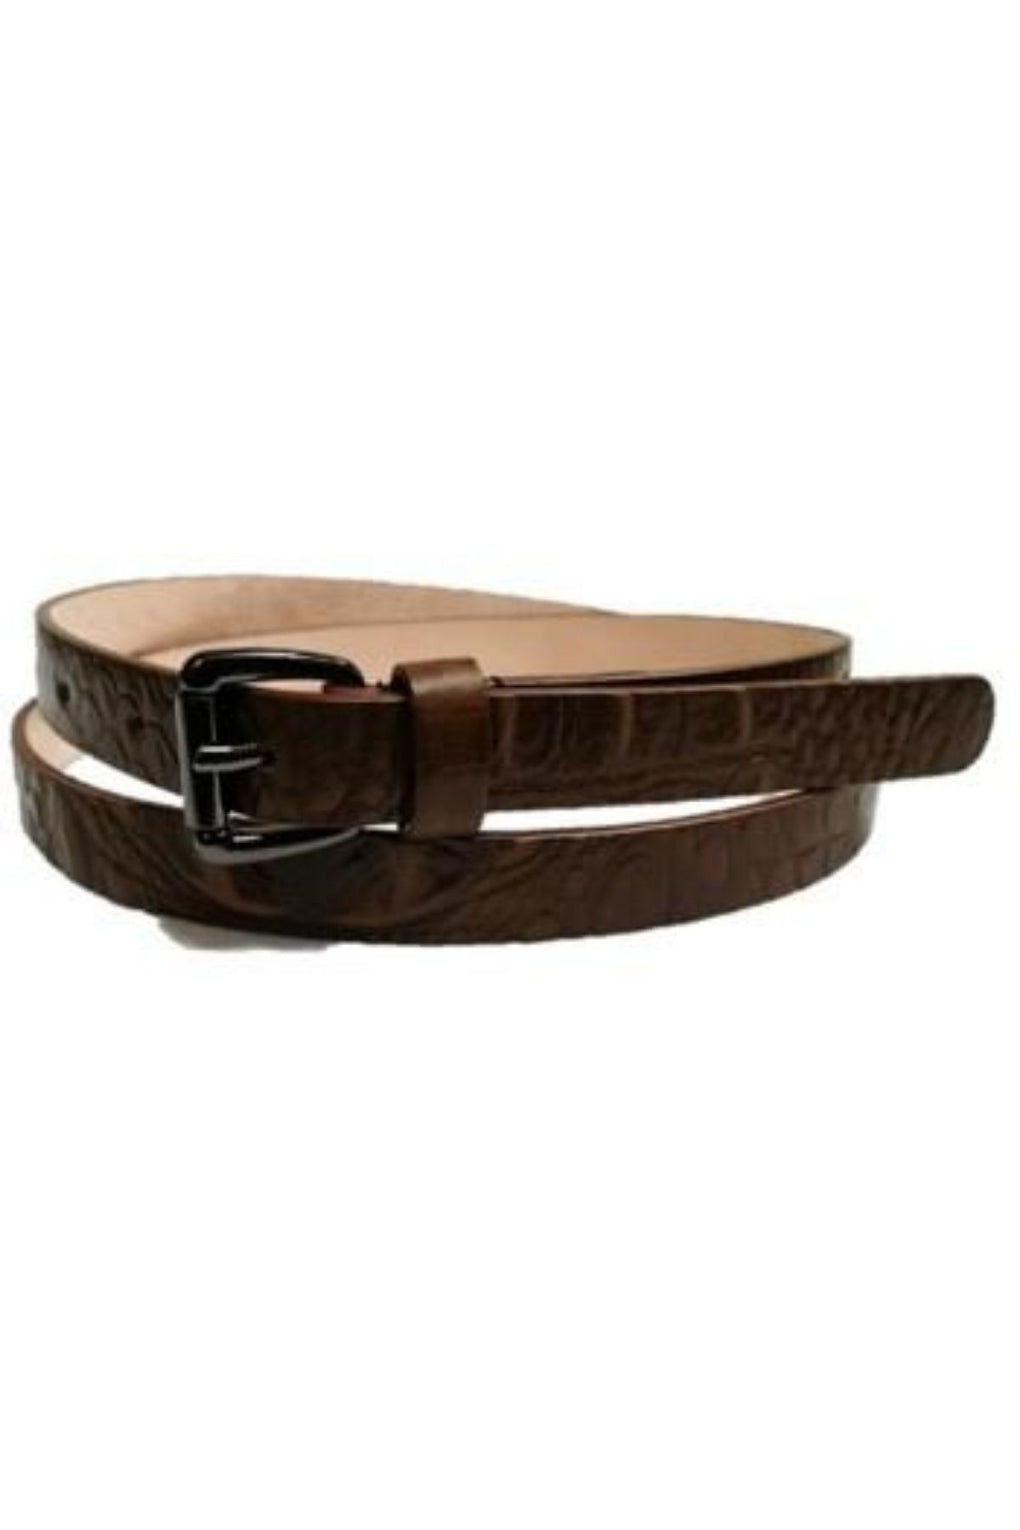 Petite Crocodile Skin Leather Belt (SE-1653)